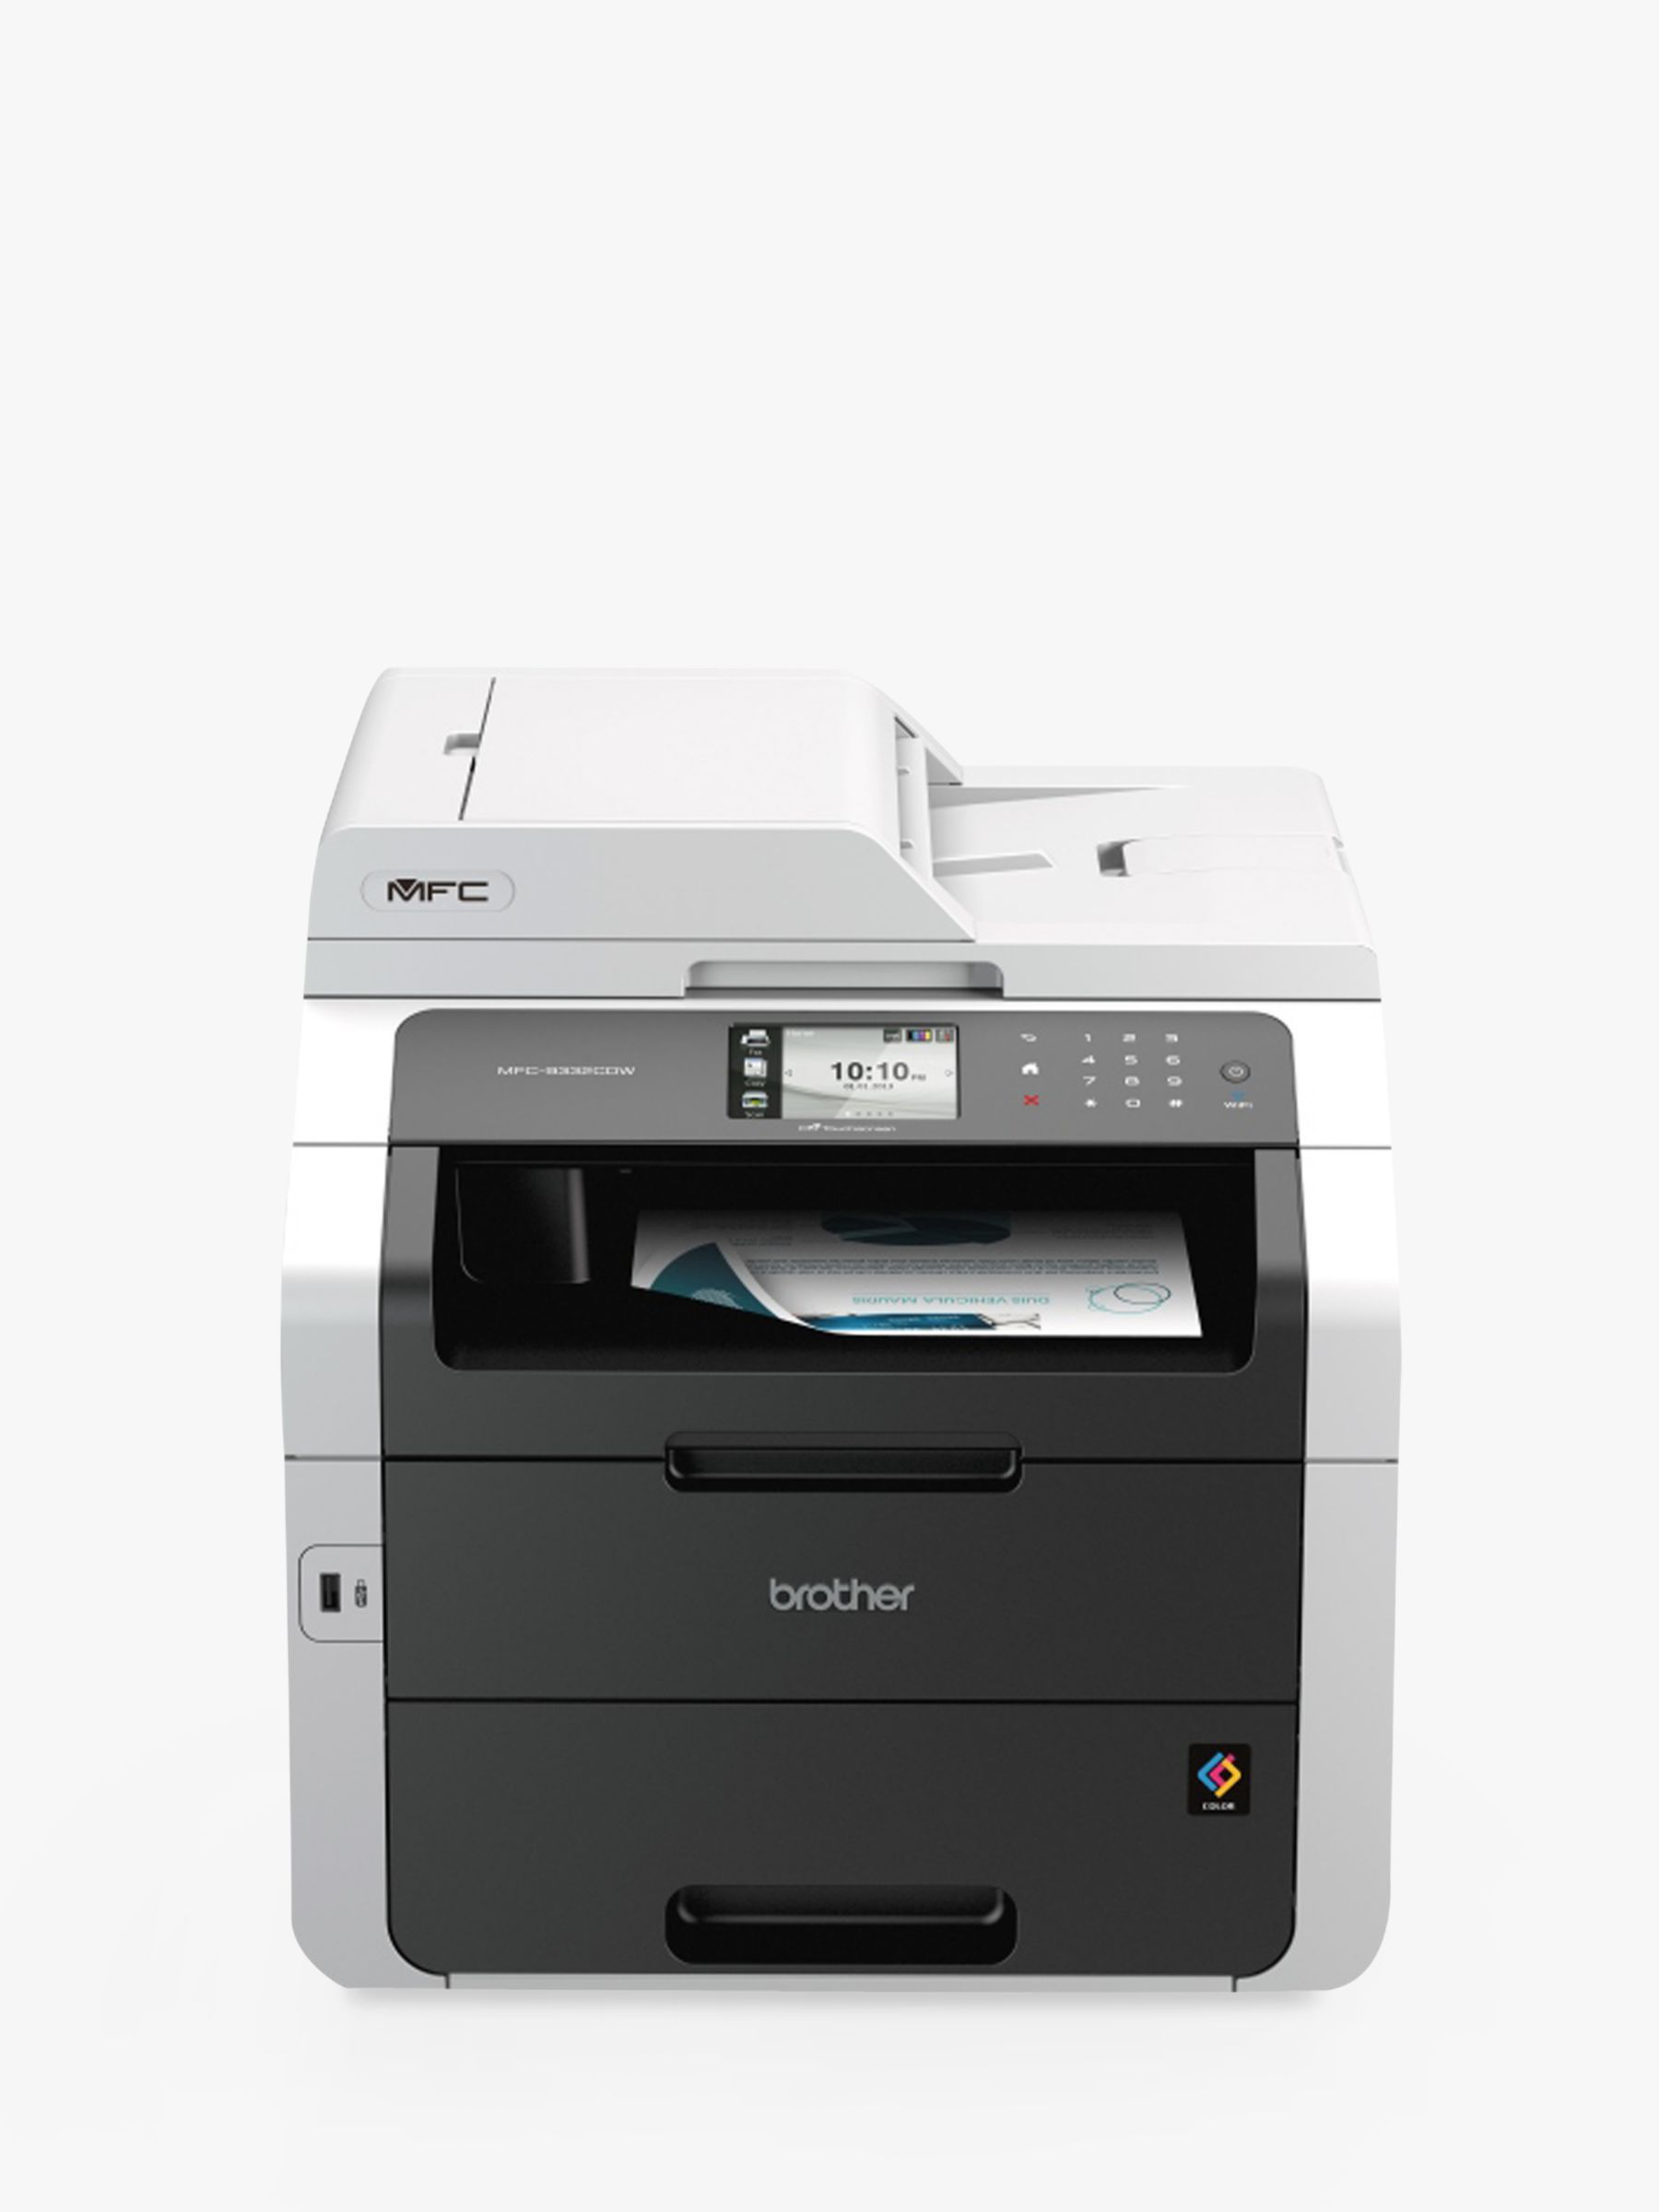 Brother Brother MFC-9330CDW Colour Laser All-in-One Printer with Duplex, Fax, Network and Wi-Fi